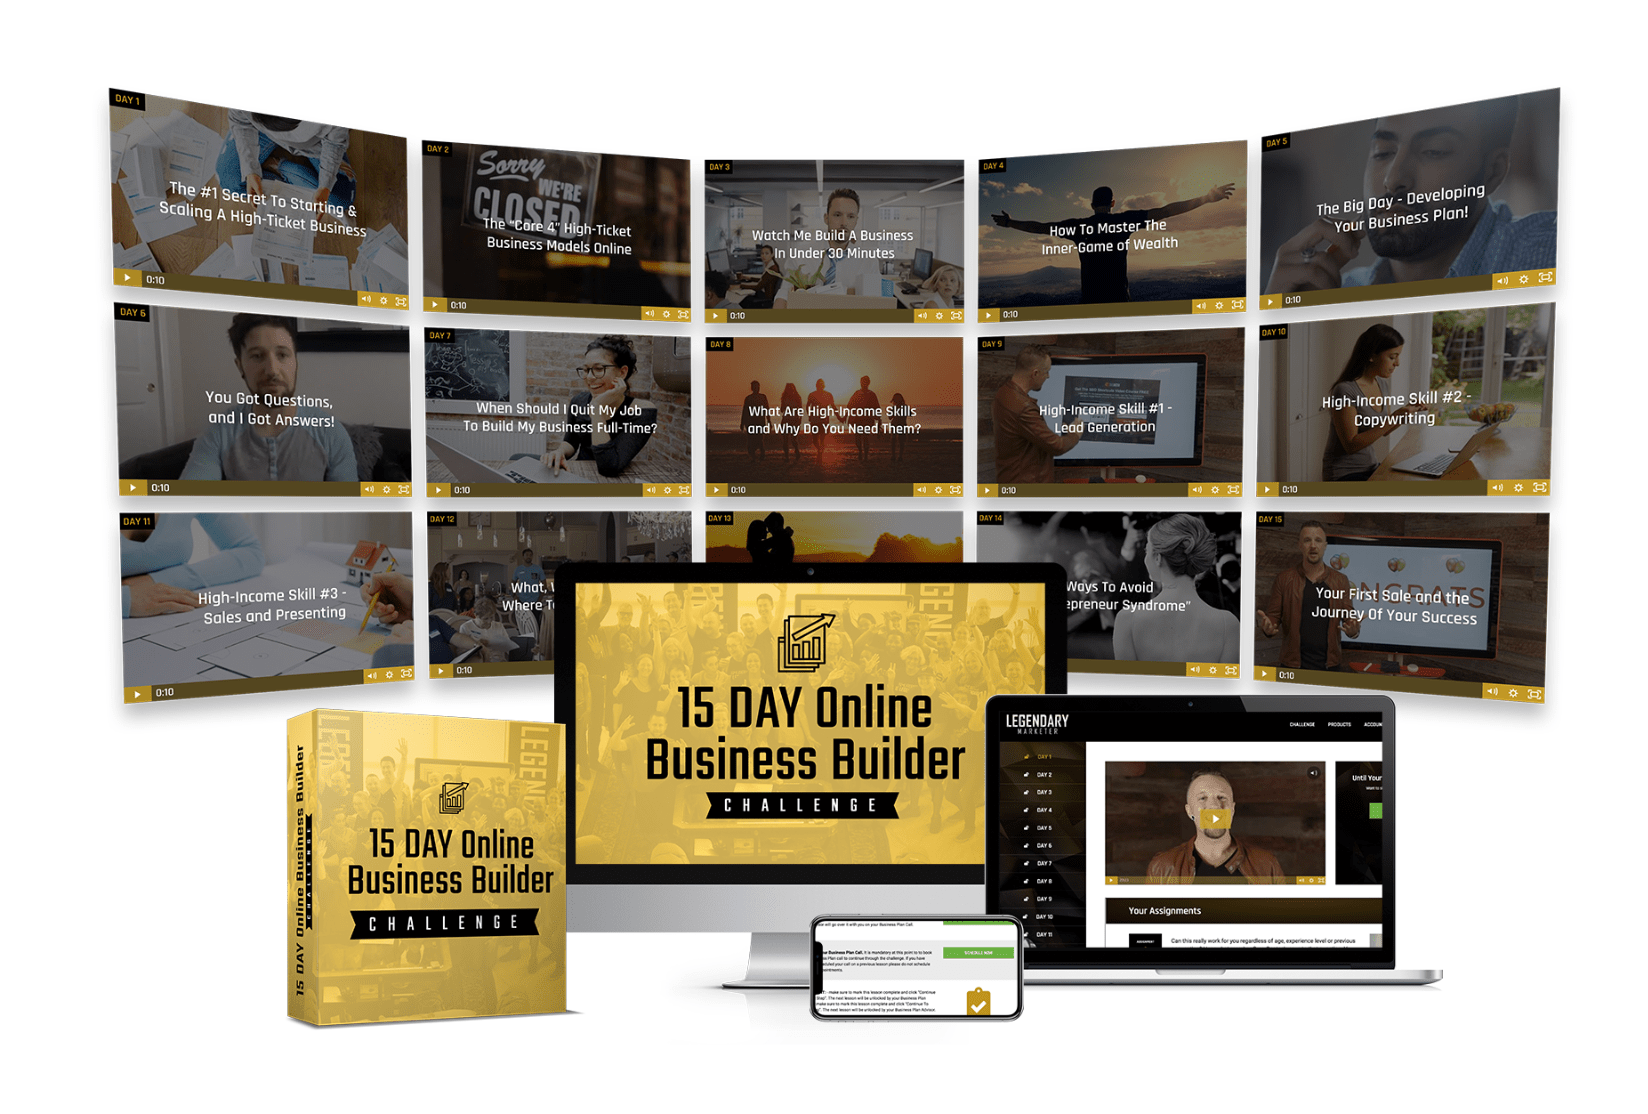 Telephone Support Legendary Marketer Internet Marketing Program